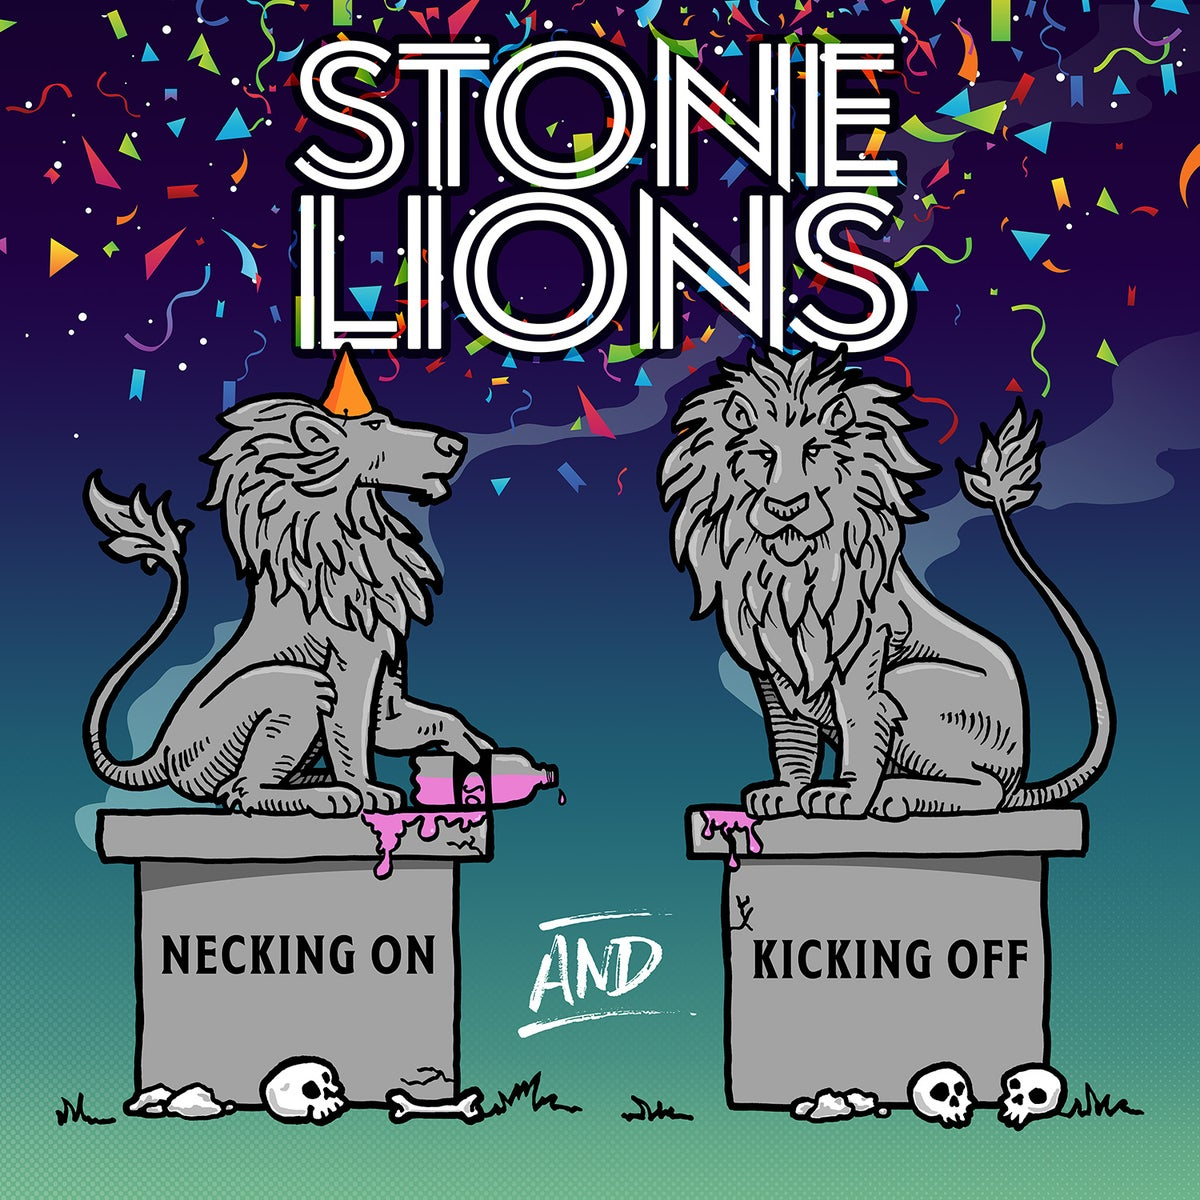 Stone Lions - Necking On And Kicking Off